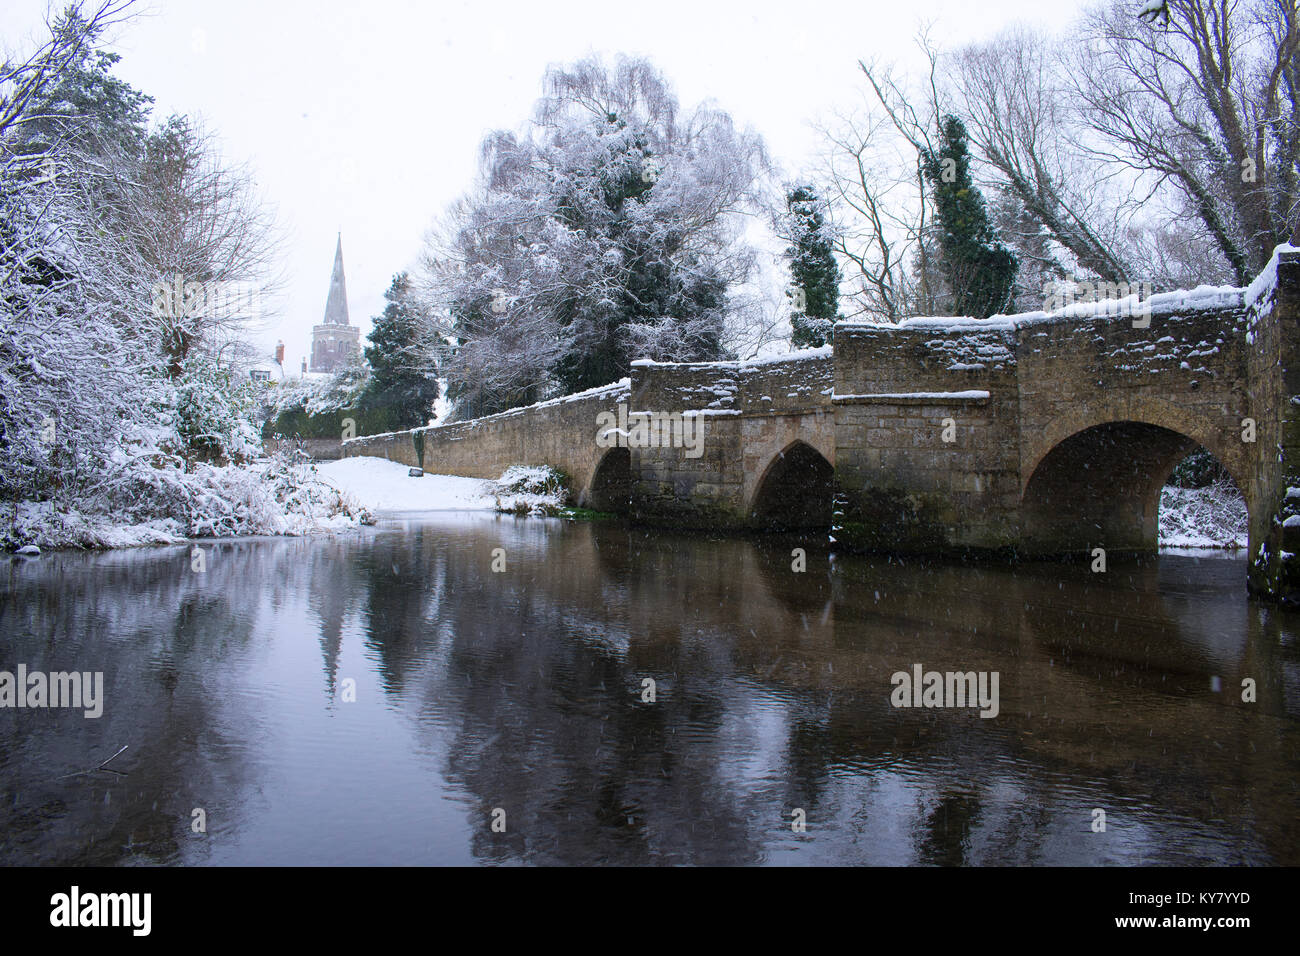 Snowy Scene in Geddington by the River Ise - Stock Image